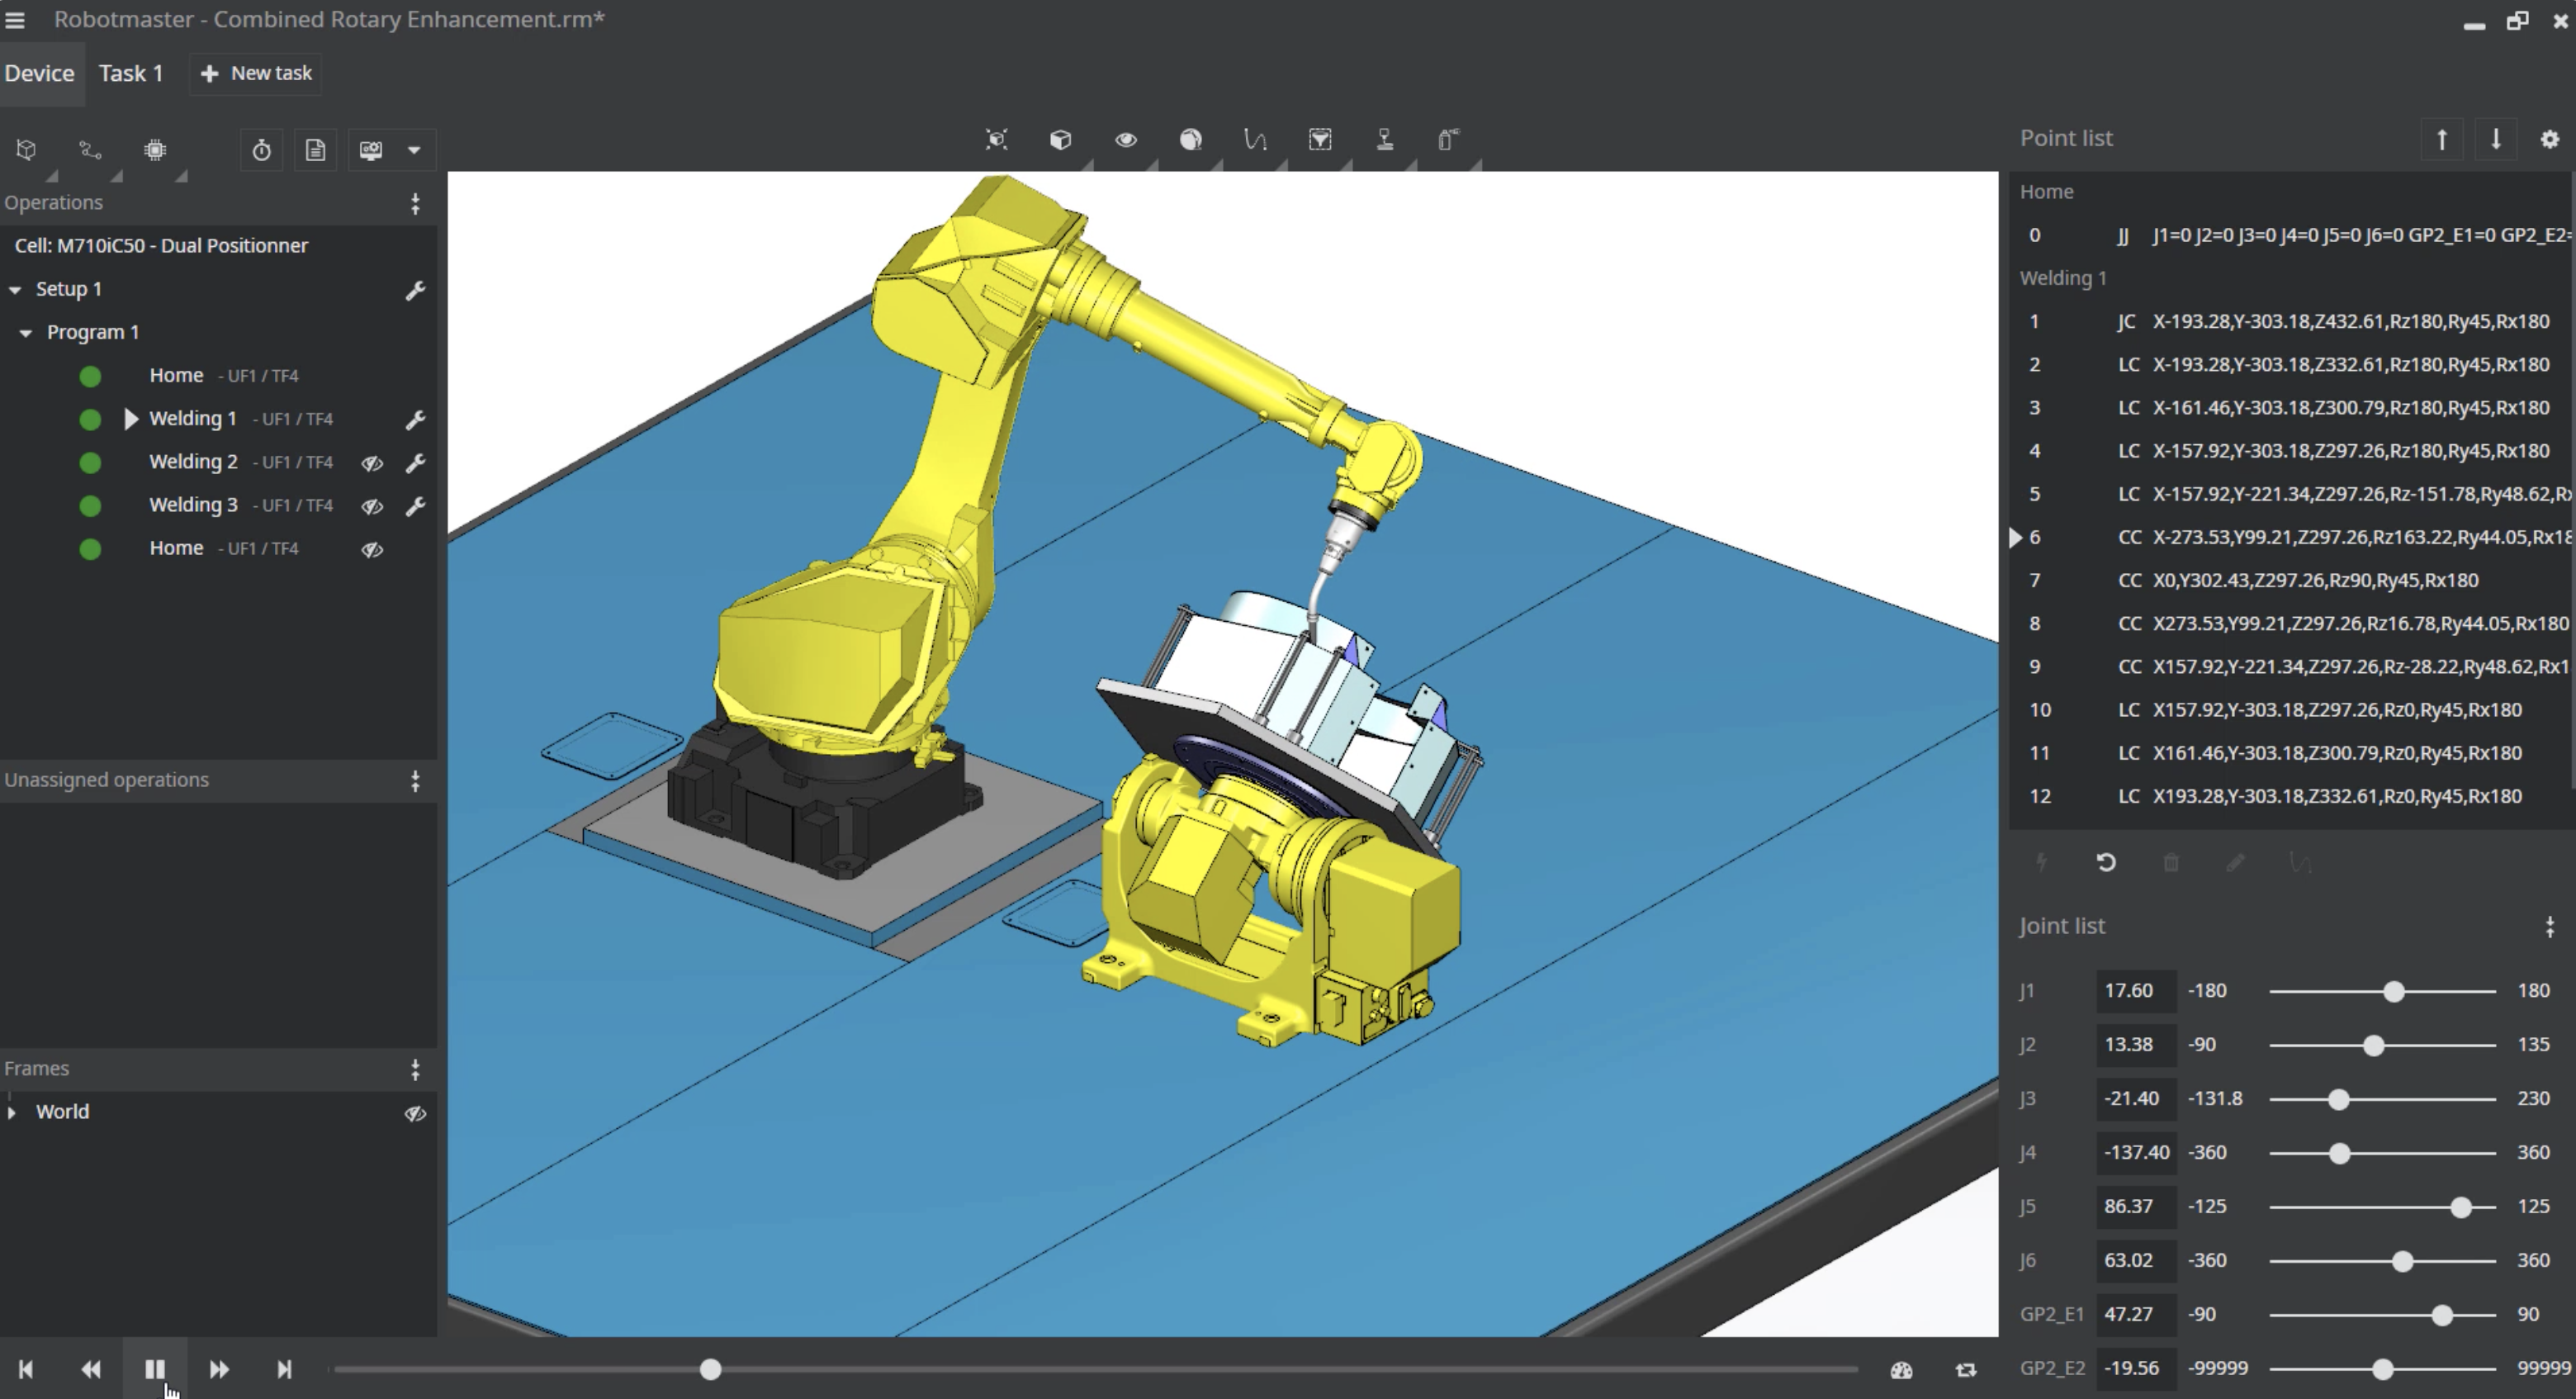 OLP can upload the programming to a robot while it is operating, which means less manufacturing delays.